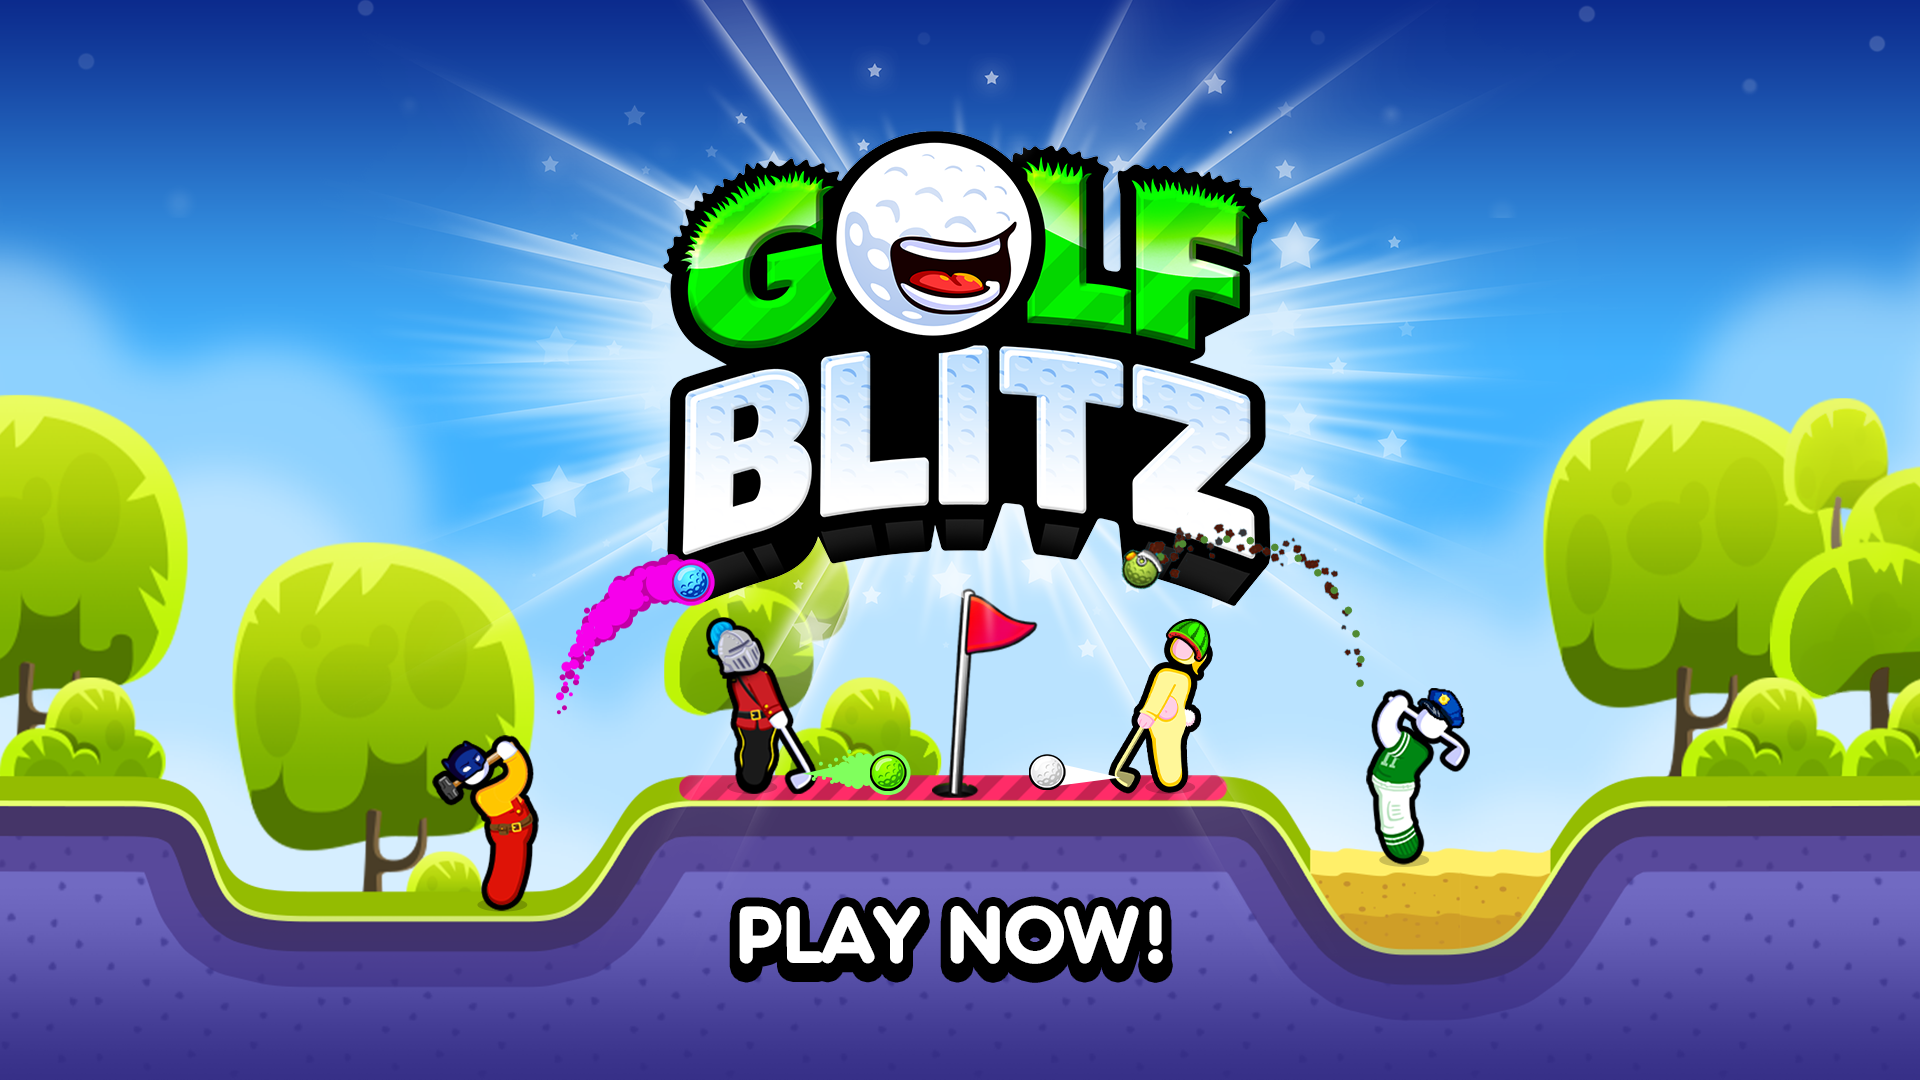 New Mobile Games - Golf Blitz